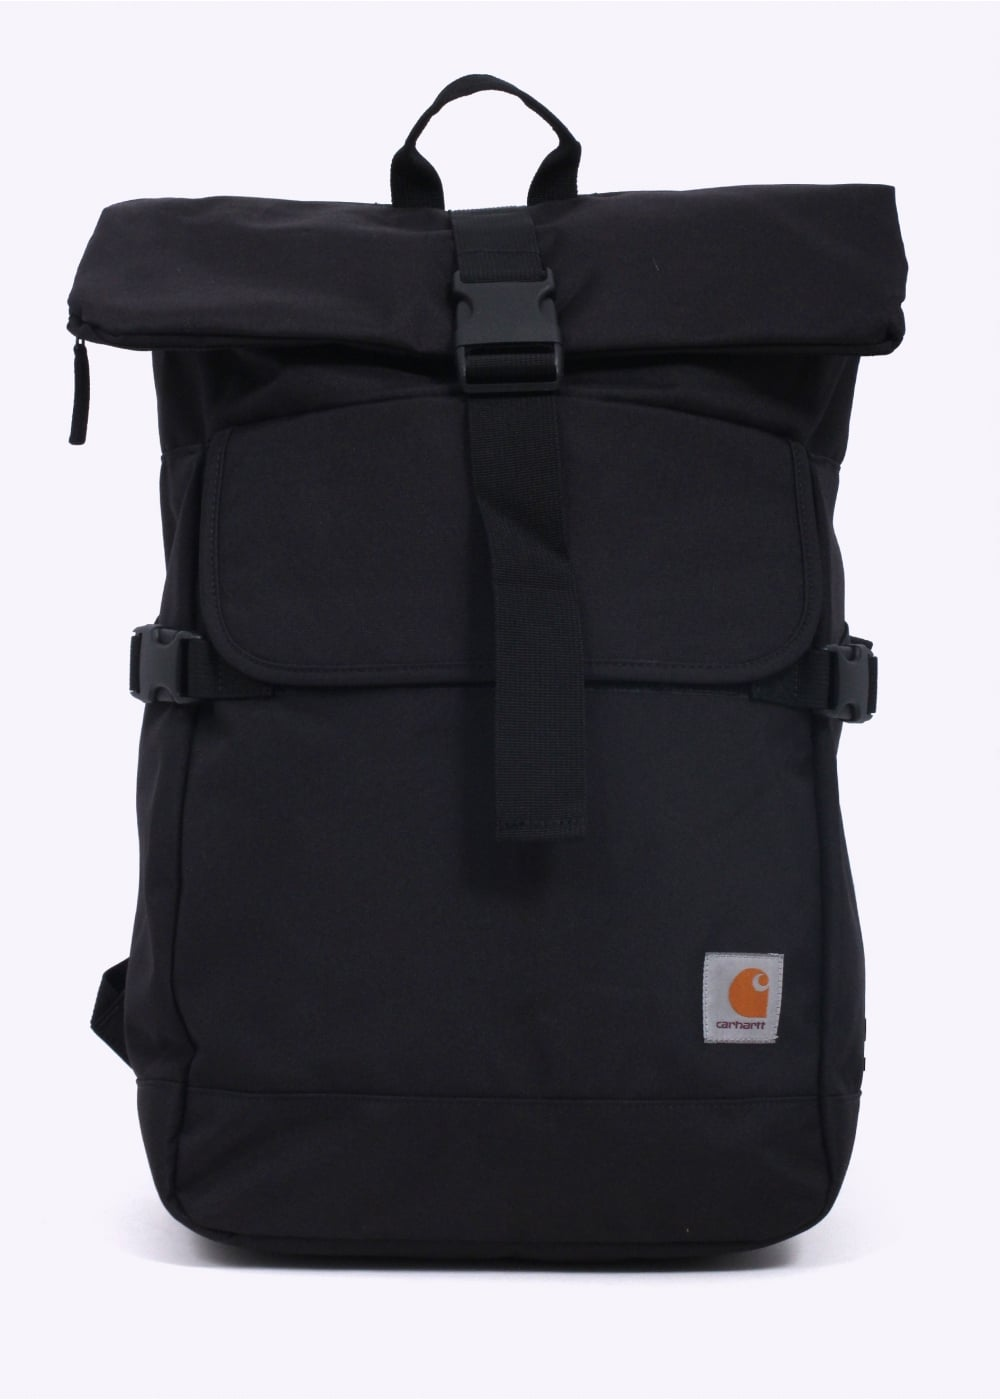 Carhartt Phillips Backpack Bags From Triads Uk